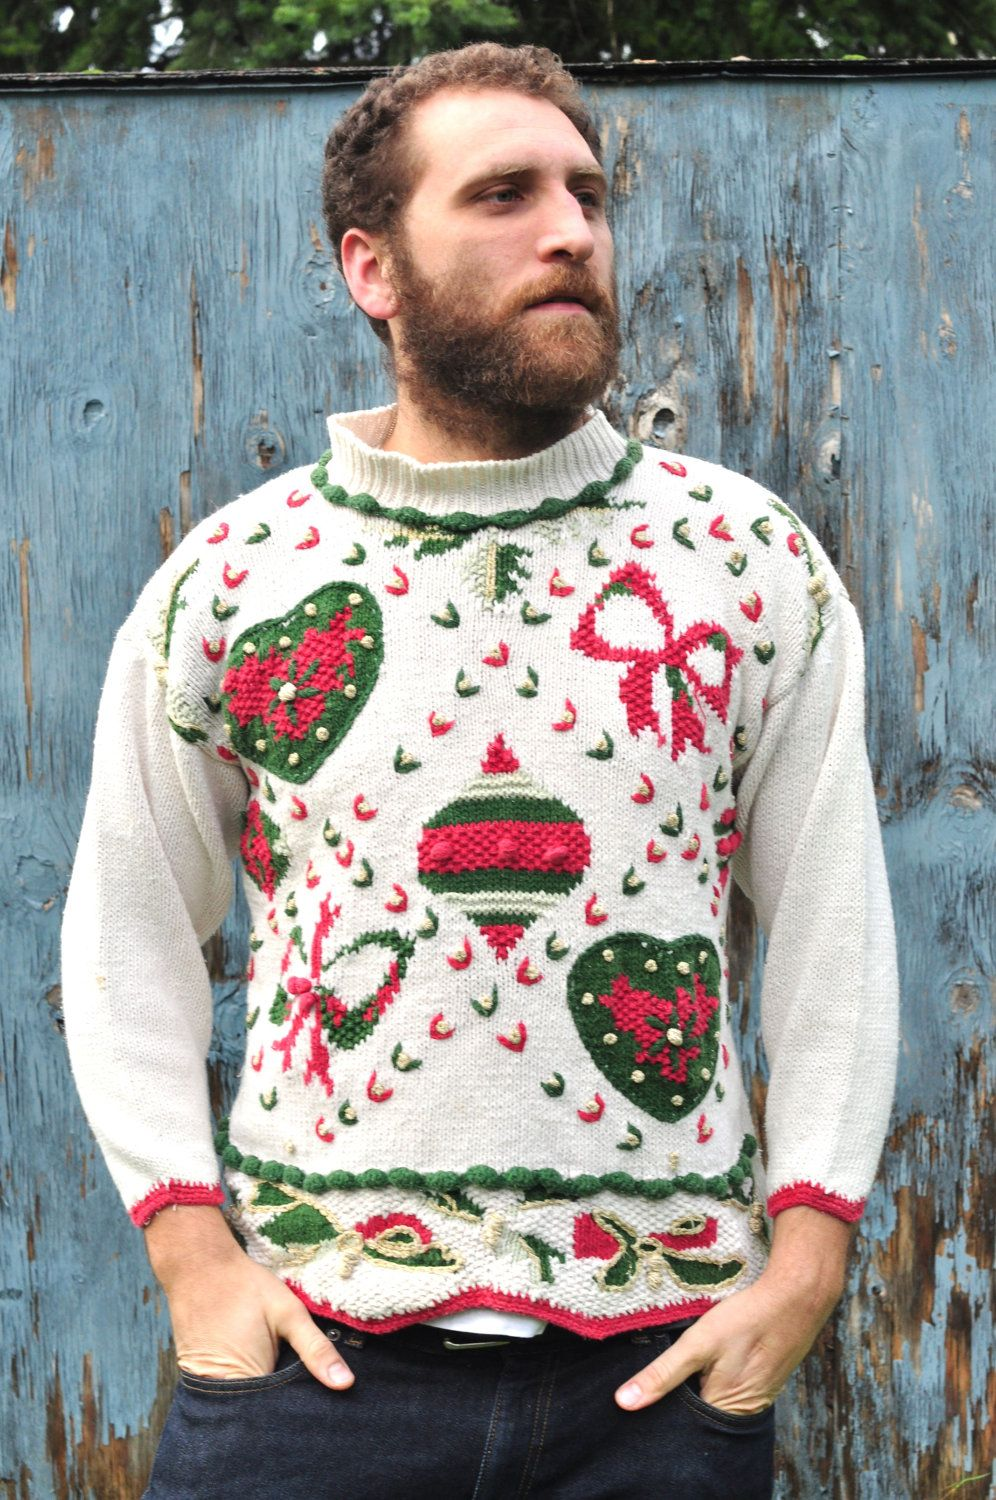 Pin by Grace Owen on Ugly Christmas Sweaters | Pinterest | Ugliest ...